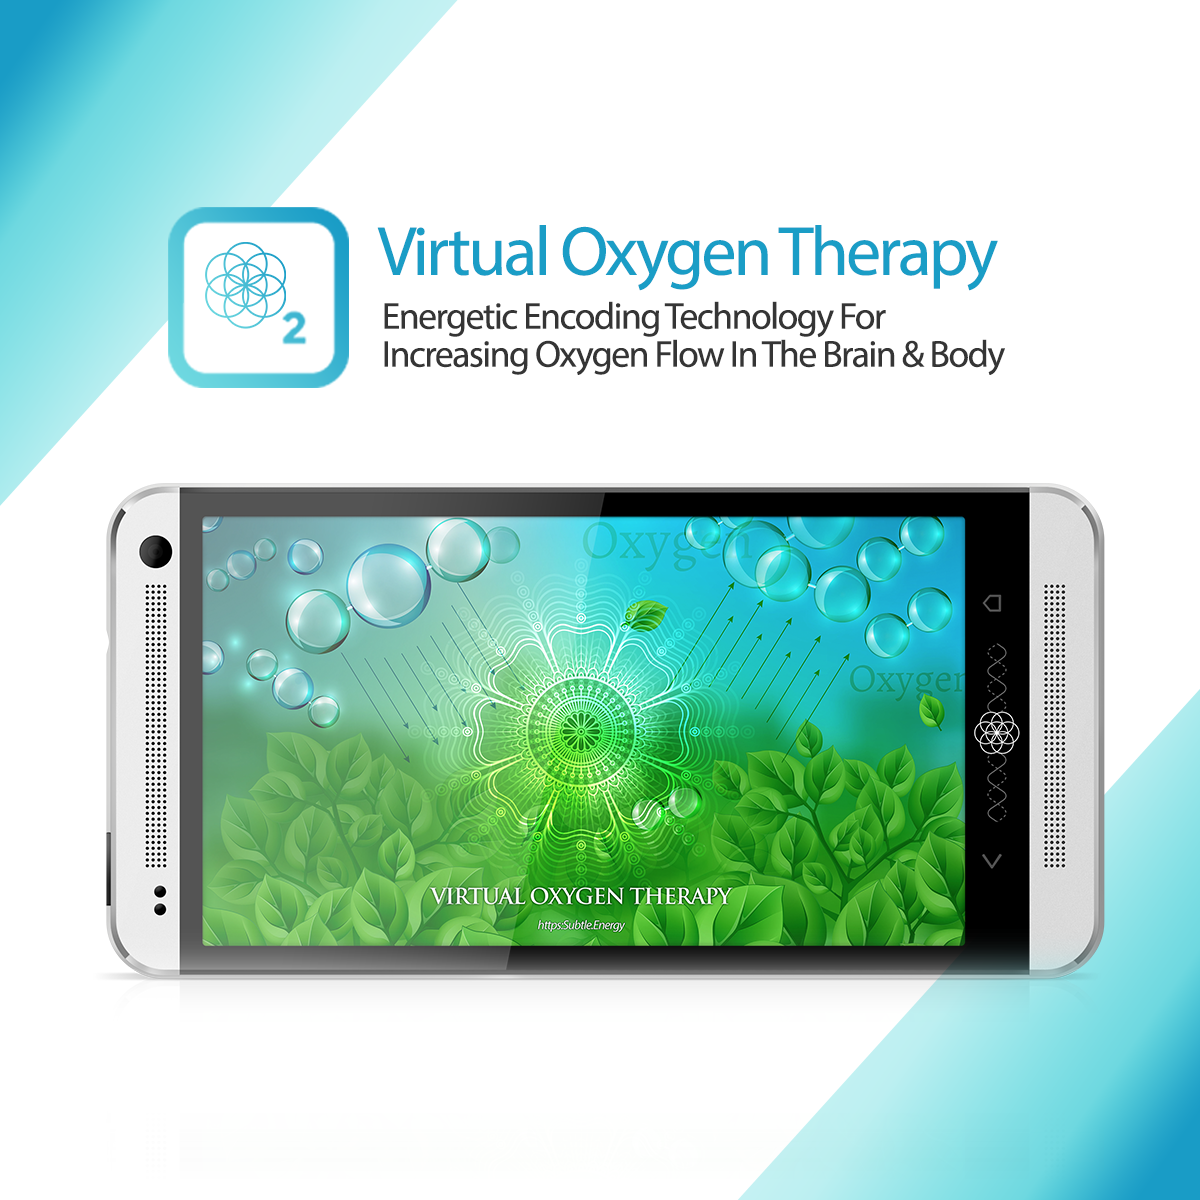 virtual-oxygen-therapy-android-white-horizontal-blue-text-1200x1200